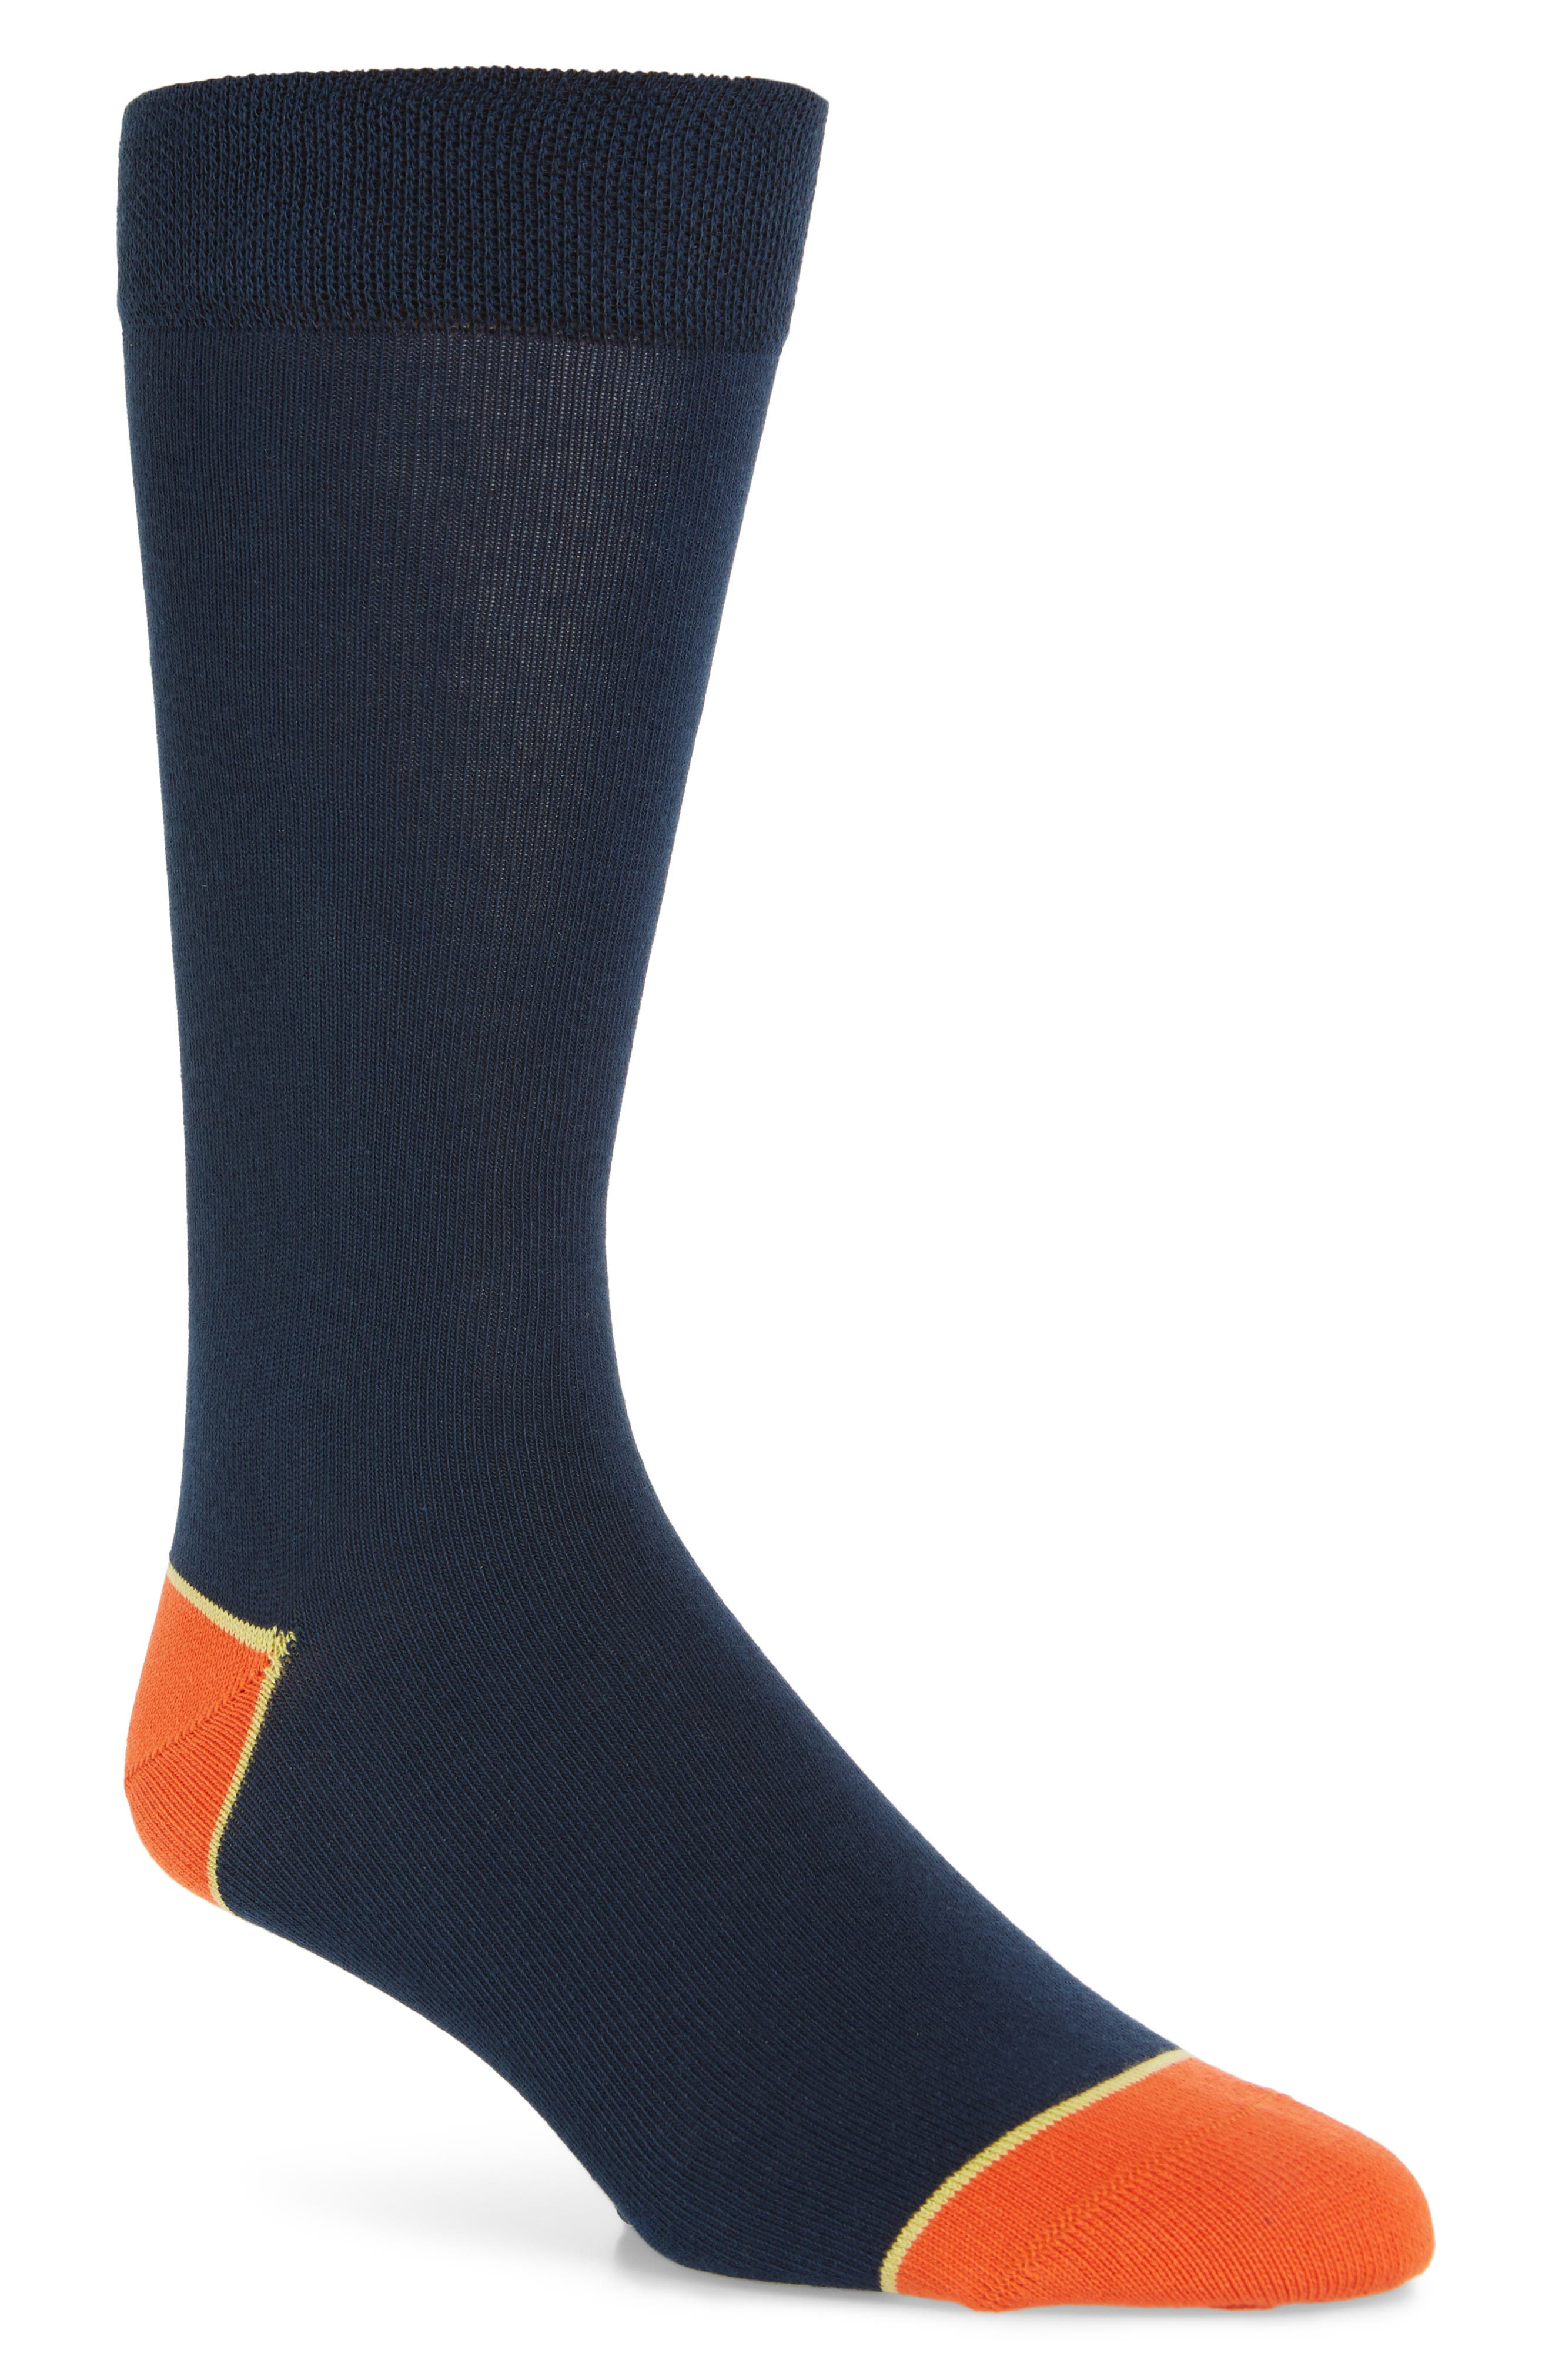 Jack Colorblock Cotton Blend Socks, Main, color, NAVY